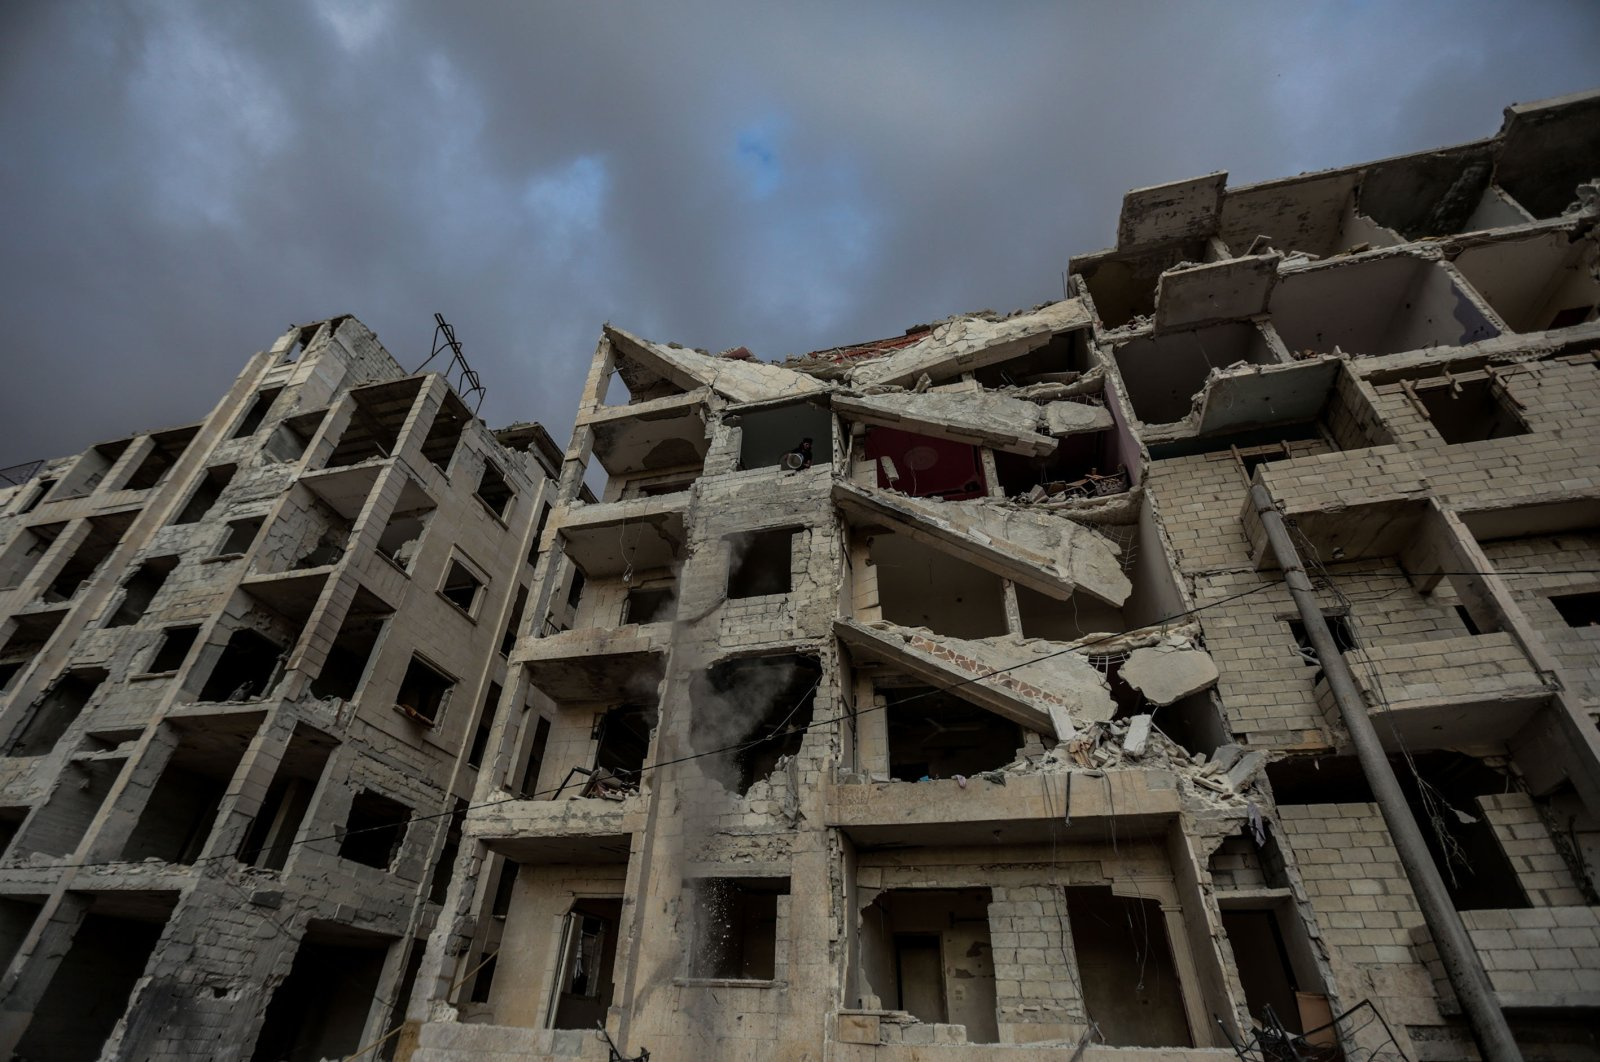 Damaged buildings in Syria's northwestern Idlib bear the signs of the almost decadelong war in the country, March 11, 2020. (Photo by Uğur Yıldırım/Sabah)